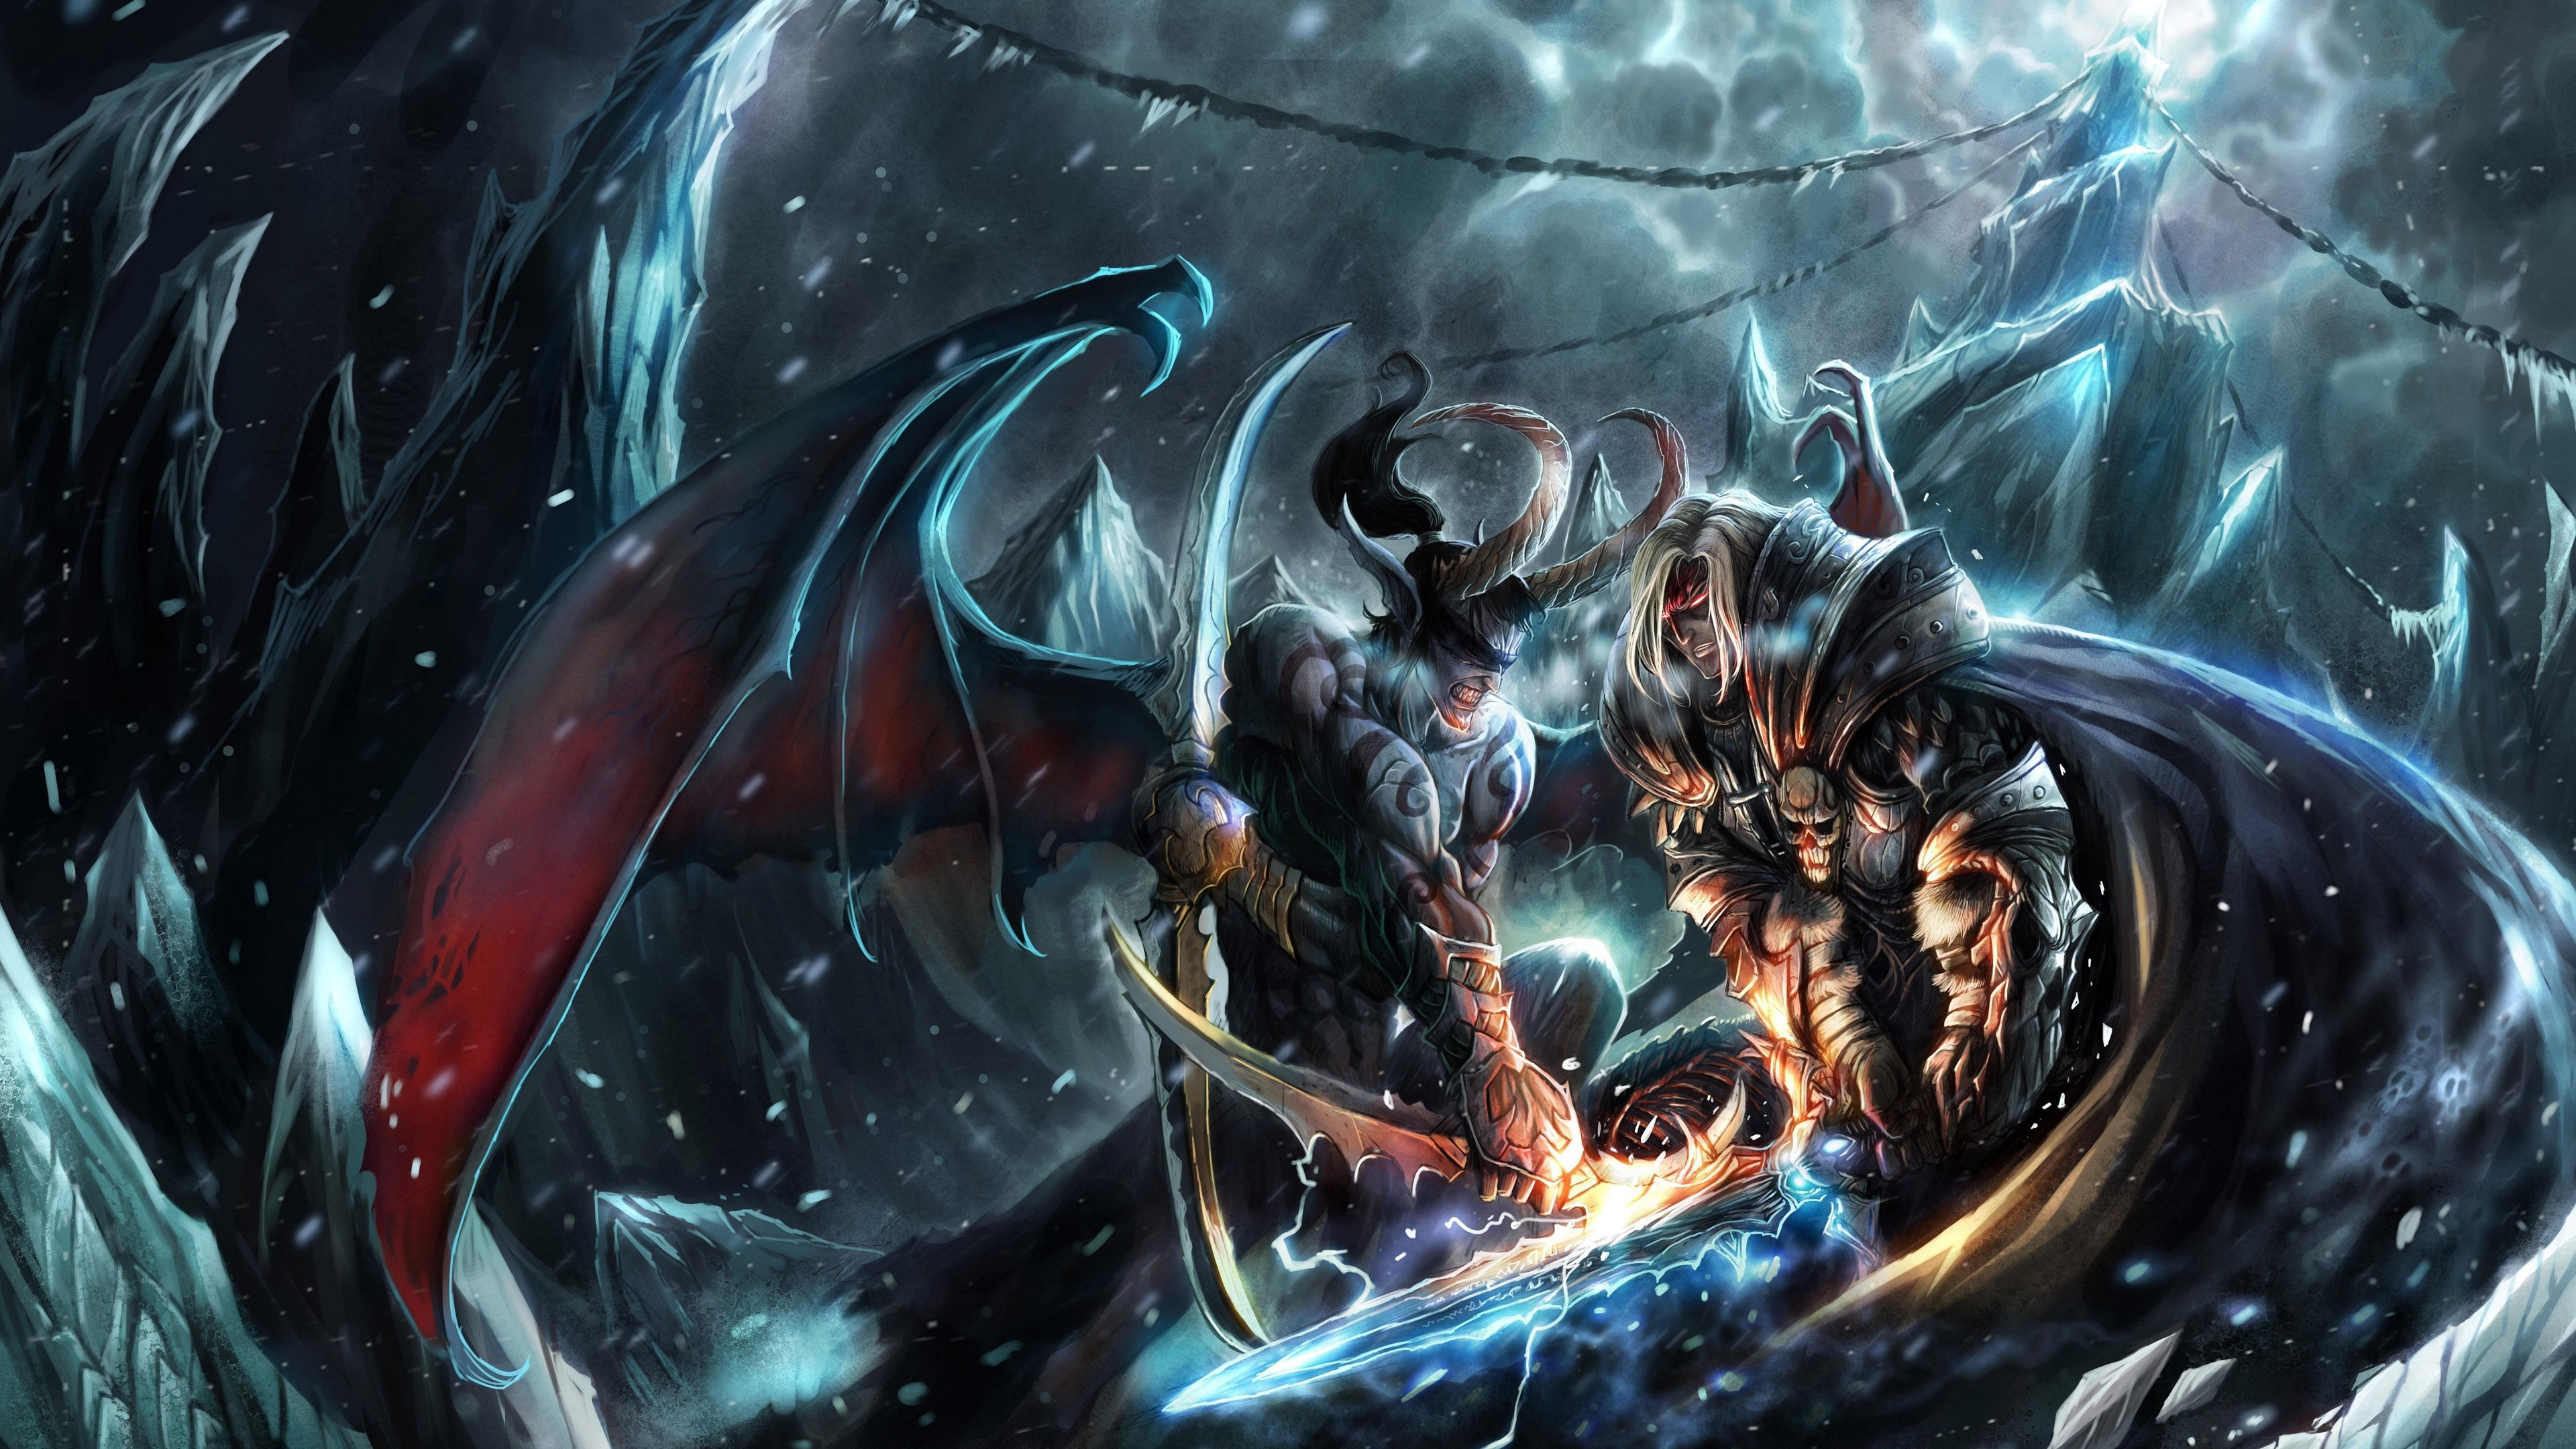 warcraft 3 tft art 4k 1538944982 - warcraft 3, tft, art 4k - warcraft 3, tft, art